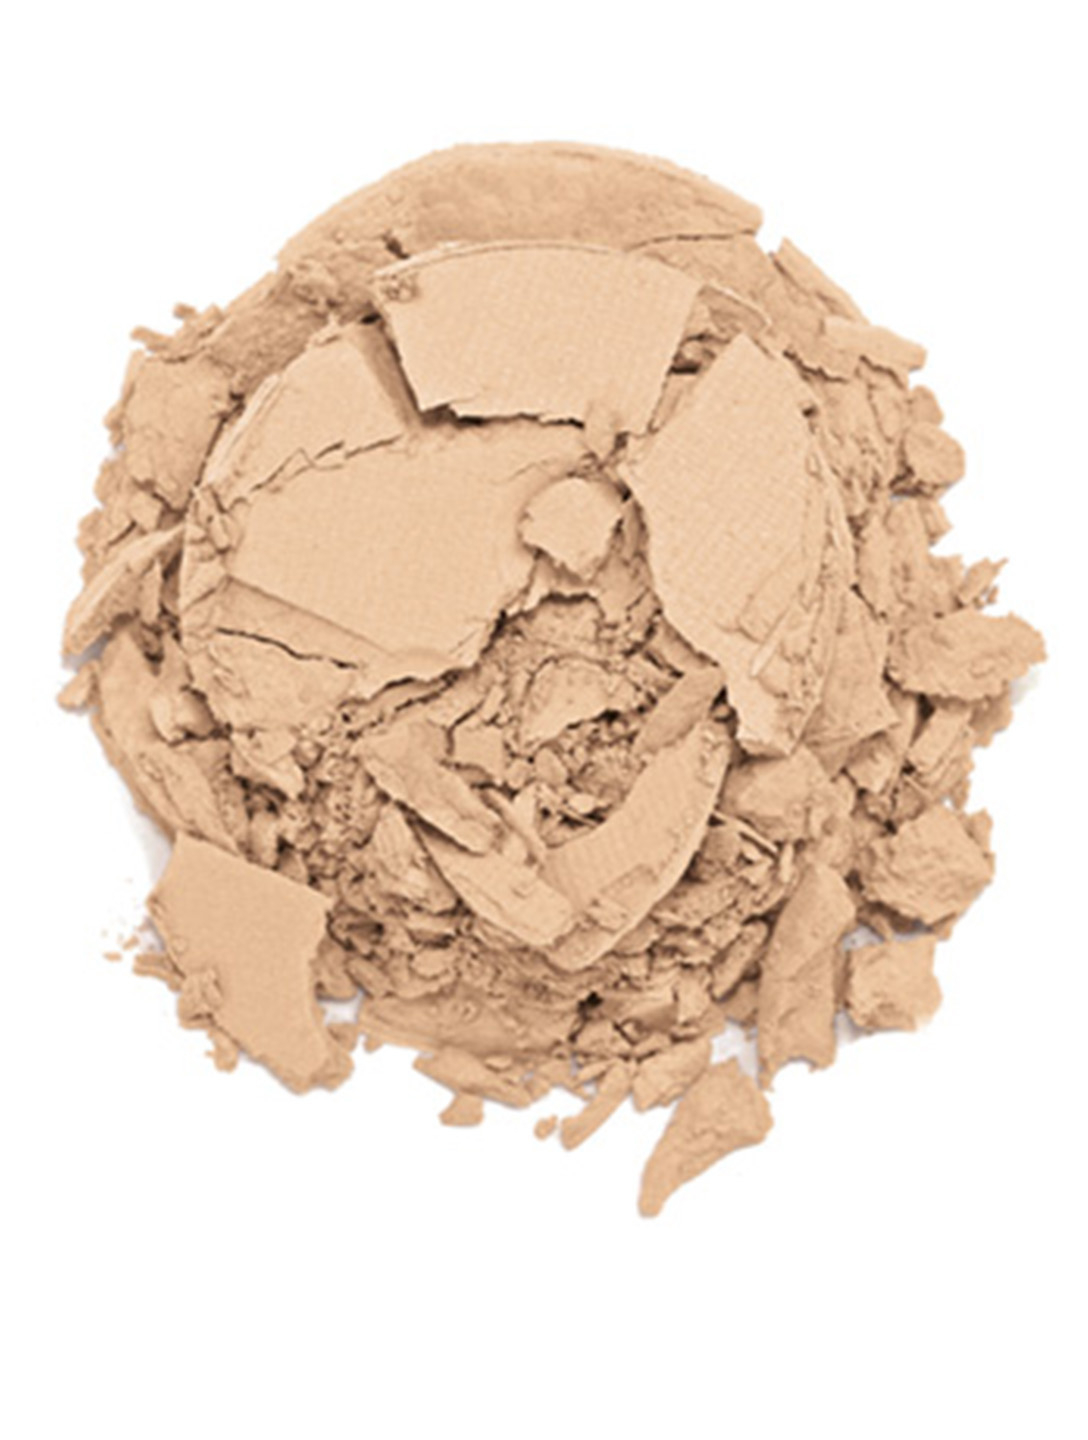 SISLEY-PARIS Phyto-Poudre Compacte Powder Beauty Neutral